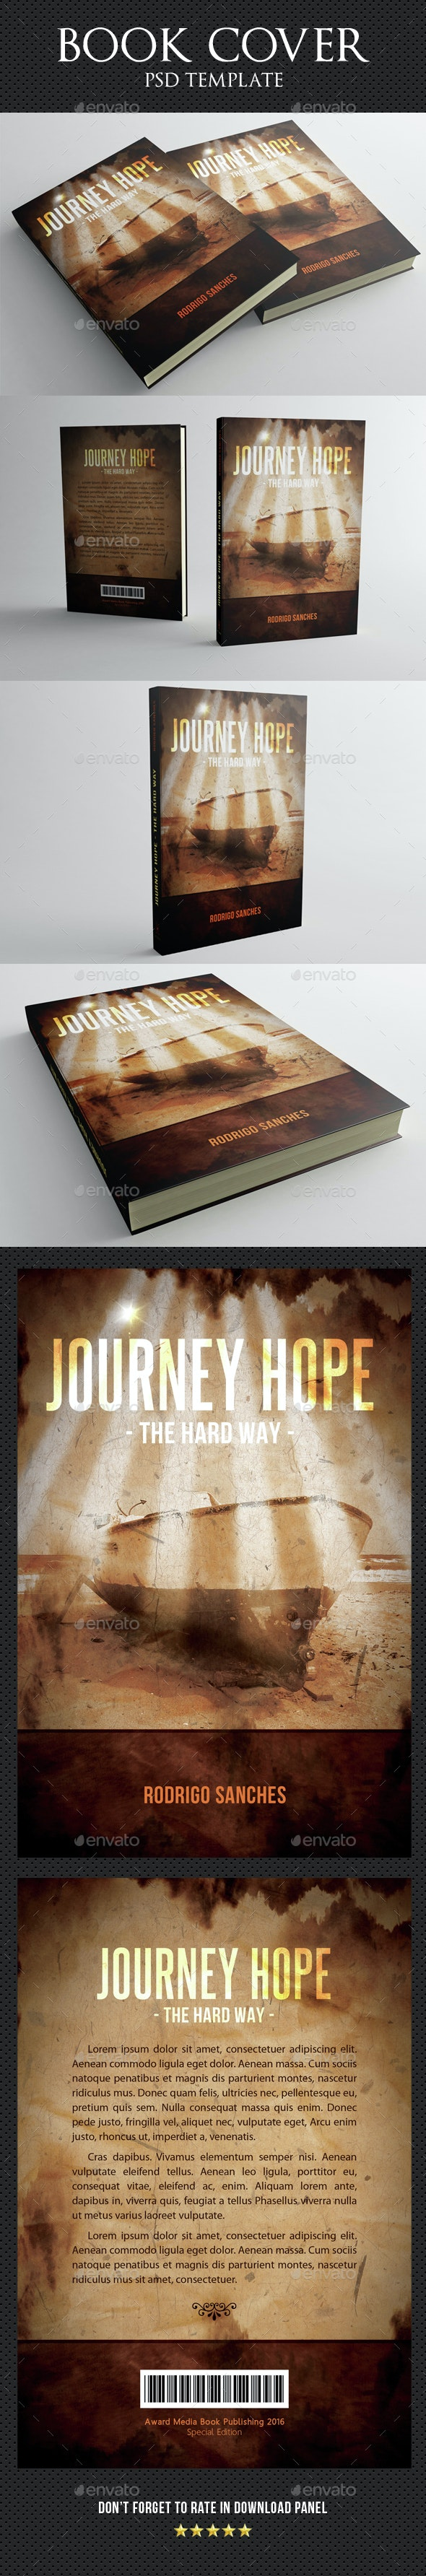 Journey Hope Book Cover Template - Miscellaneous Print Templates